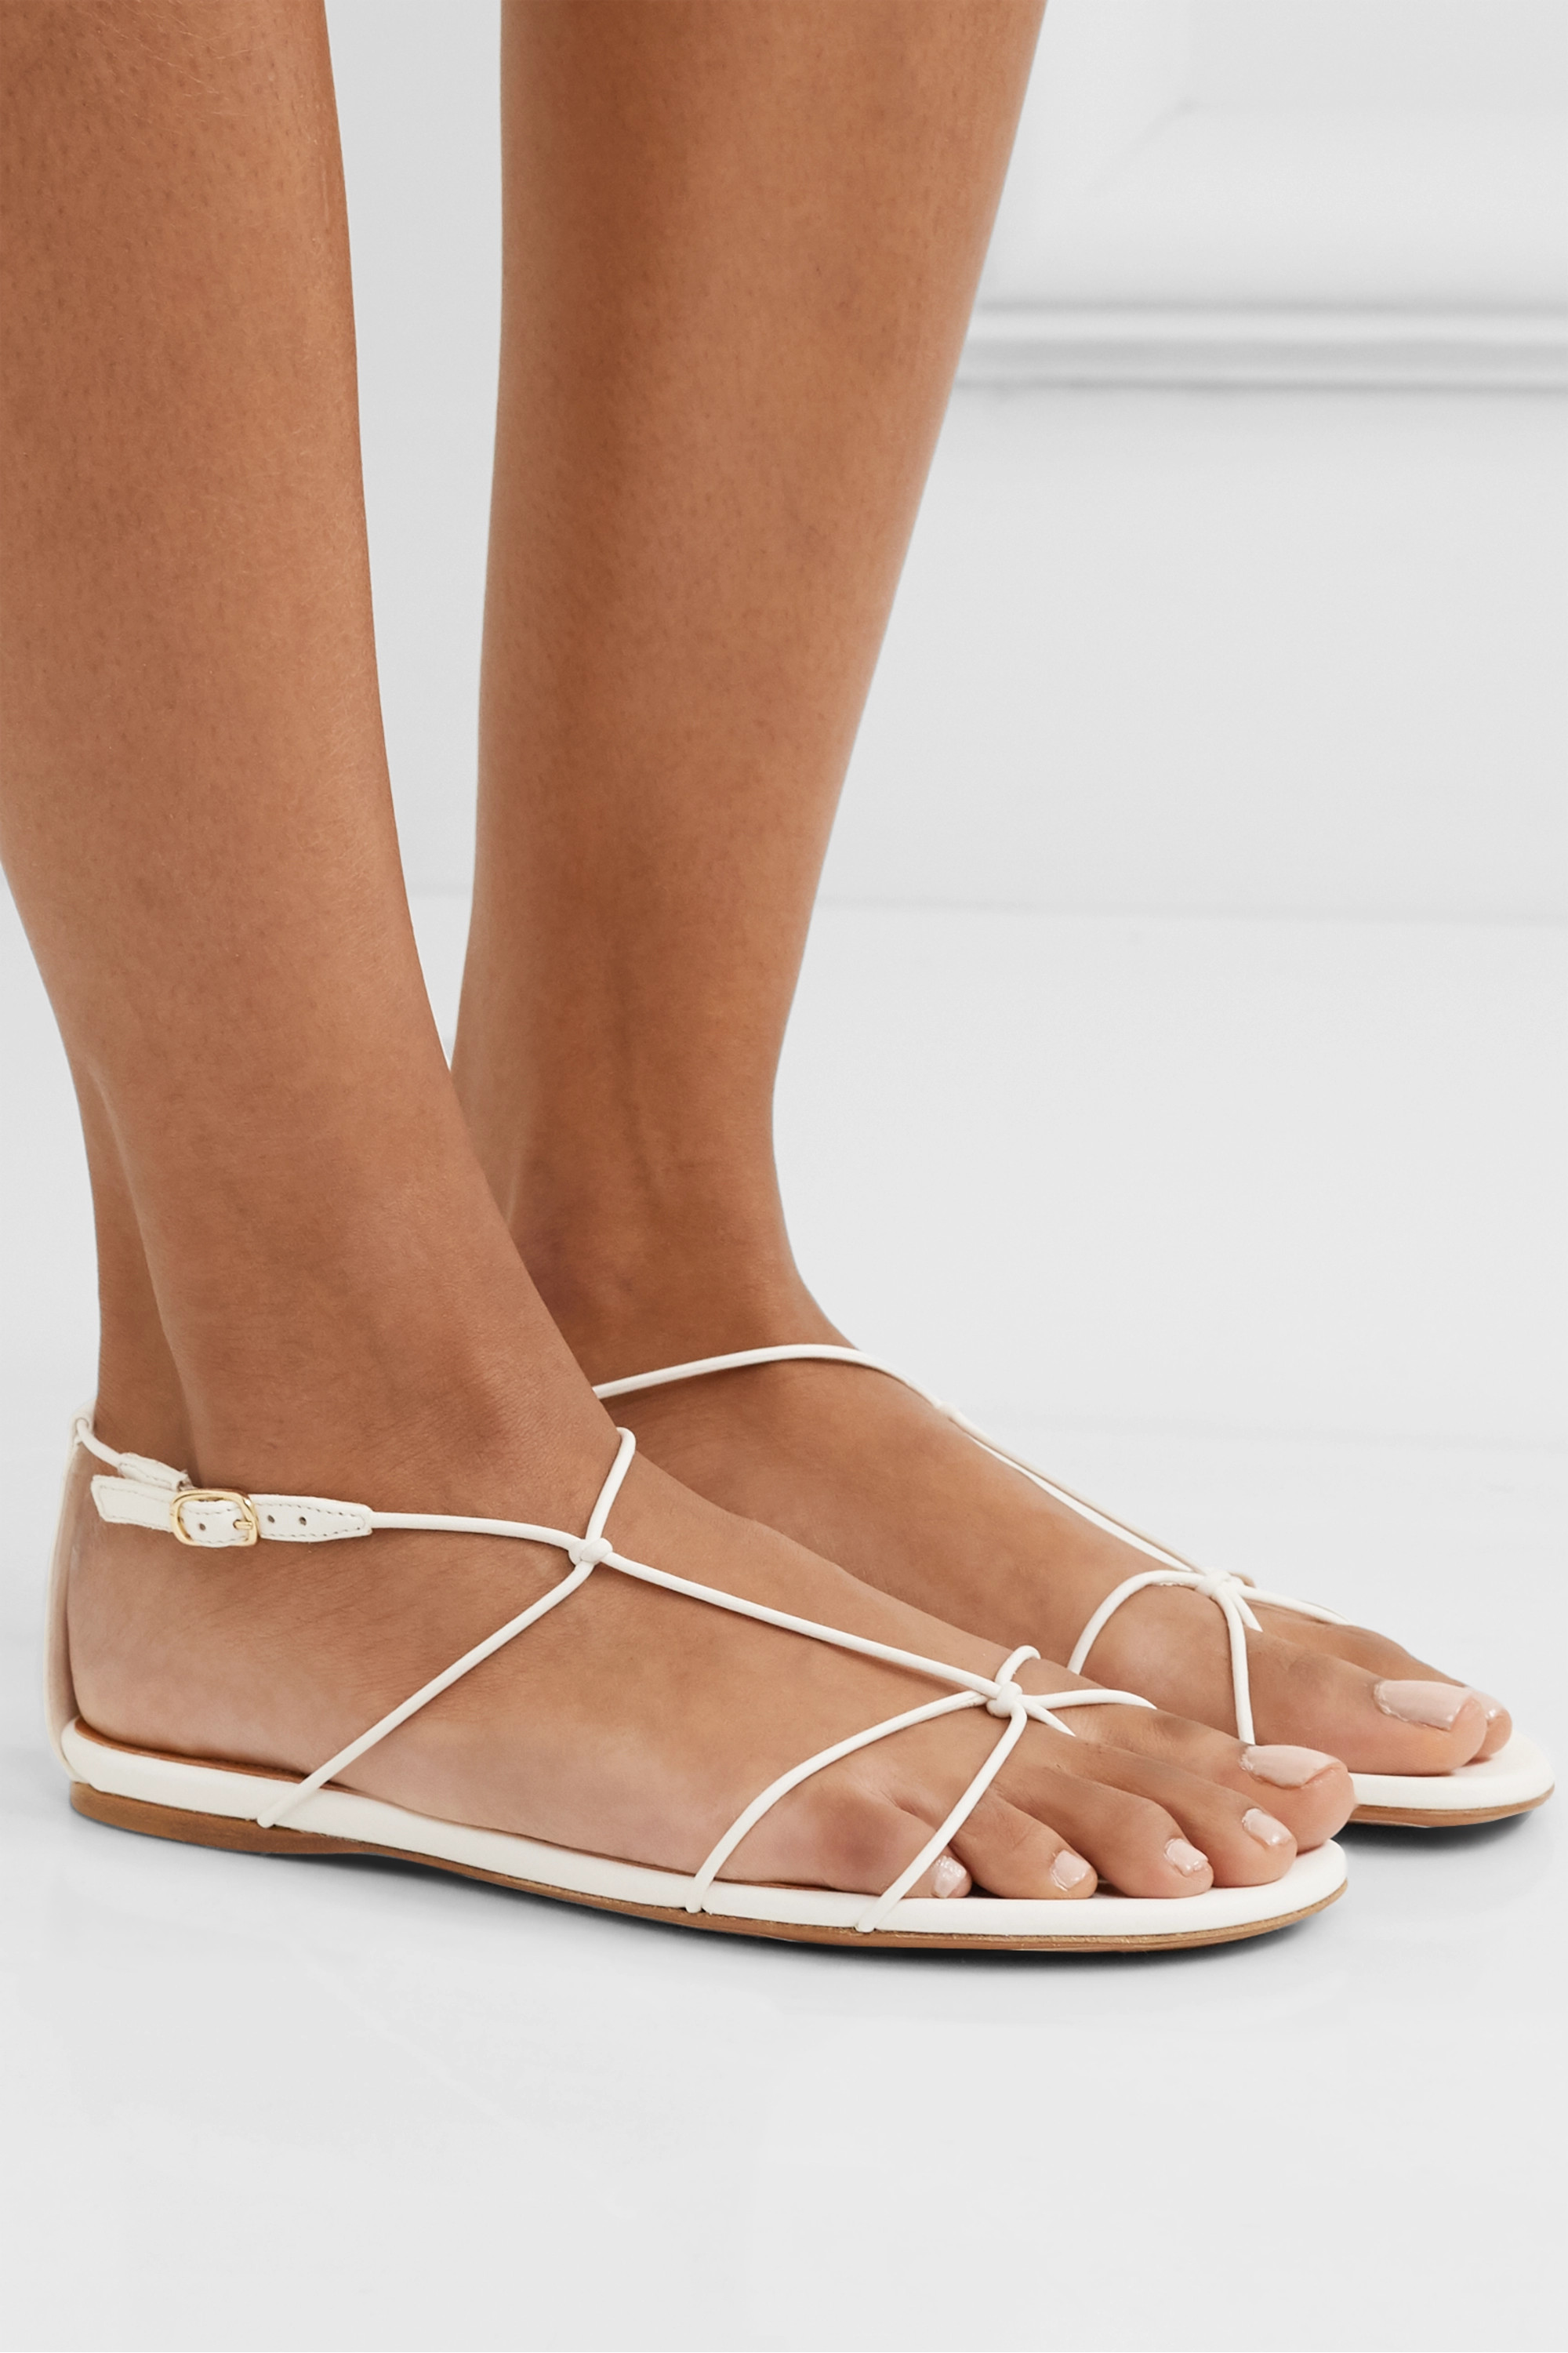 Zimmermann Knotted leather sandals